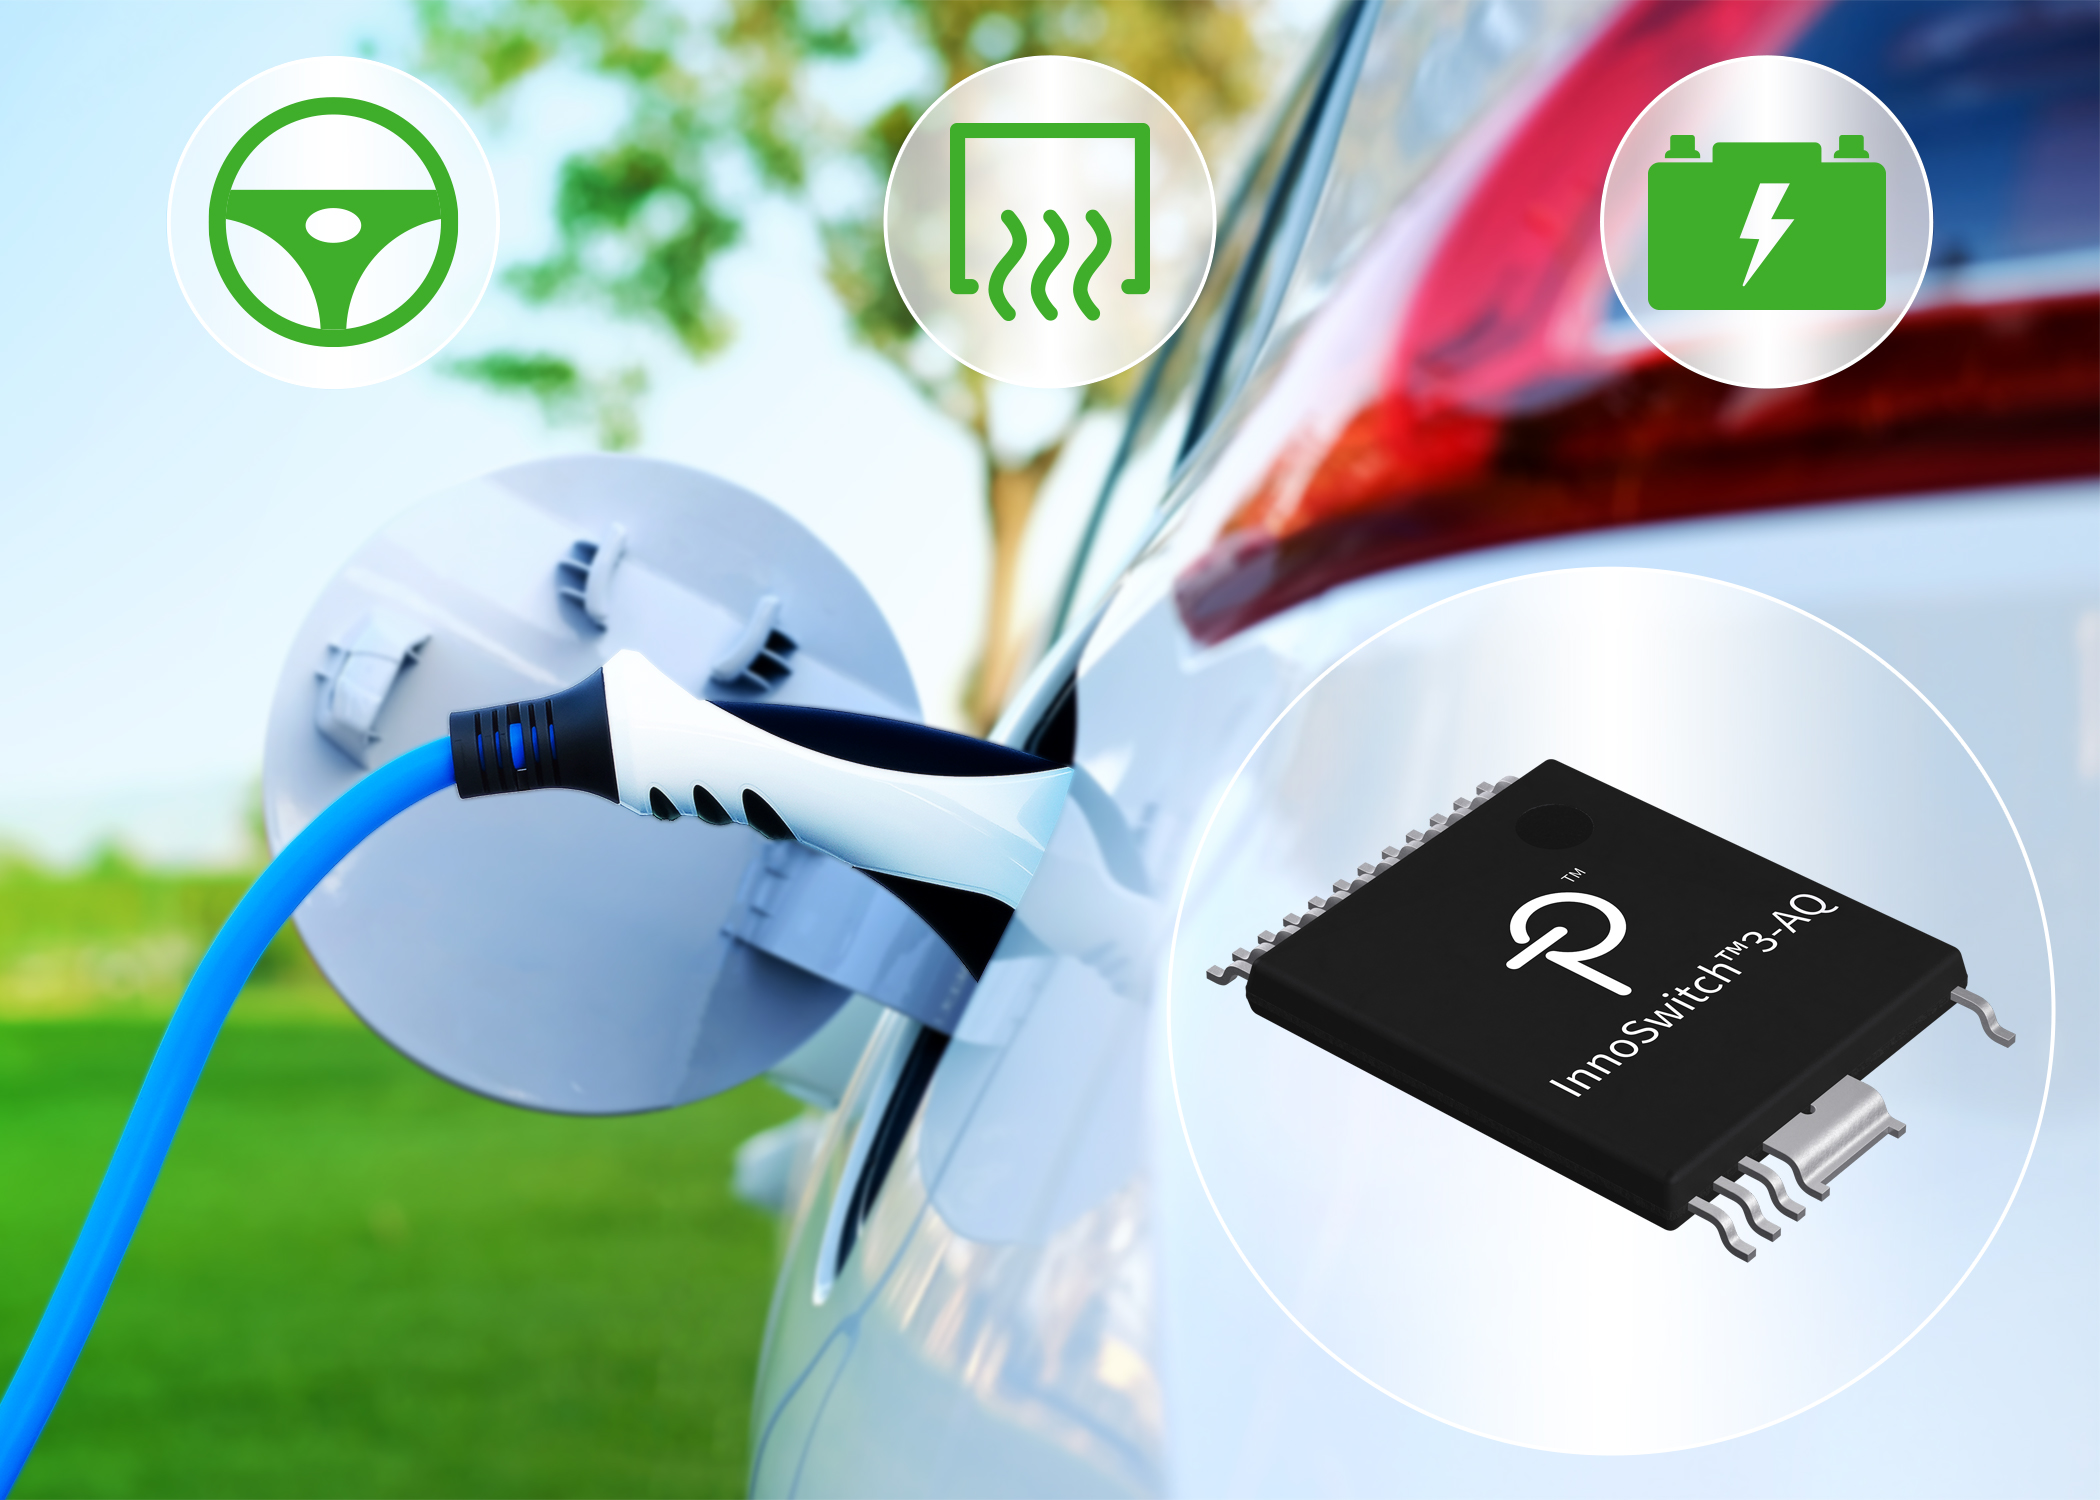 Flyback Switcher IC for Automotive BEV and PHEV Applications